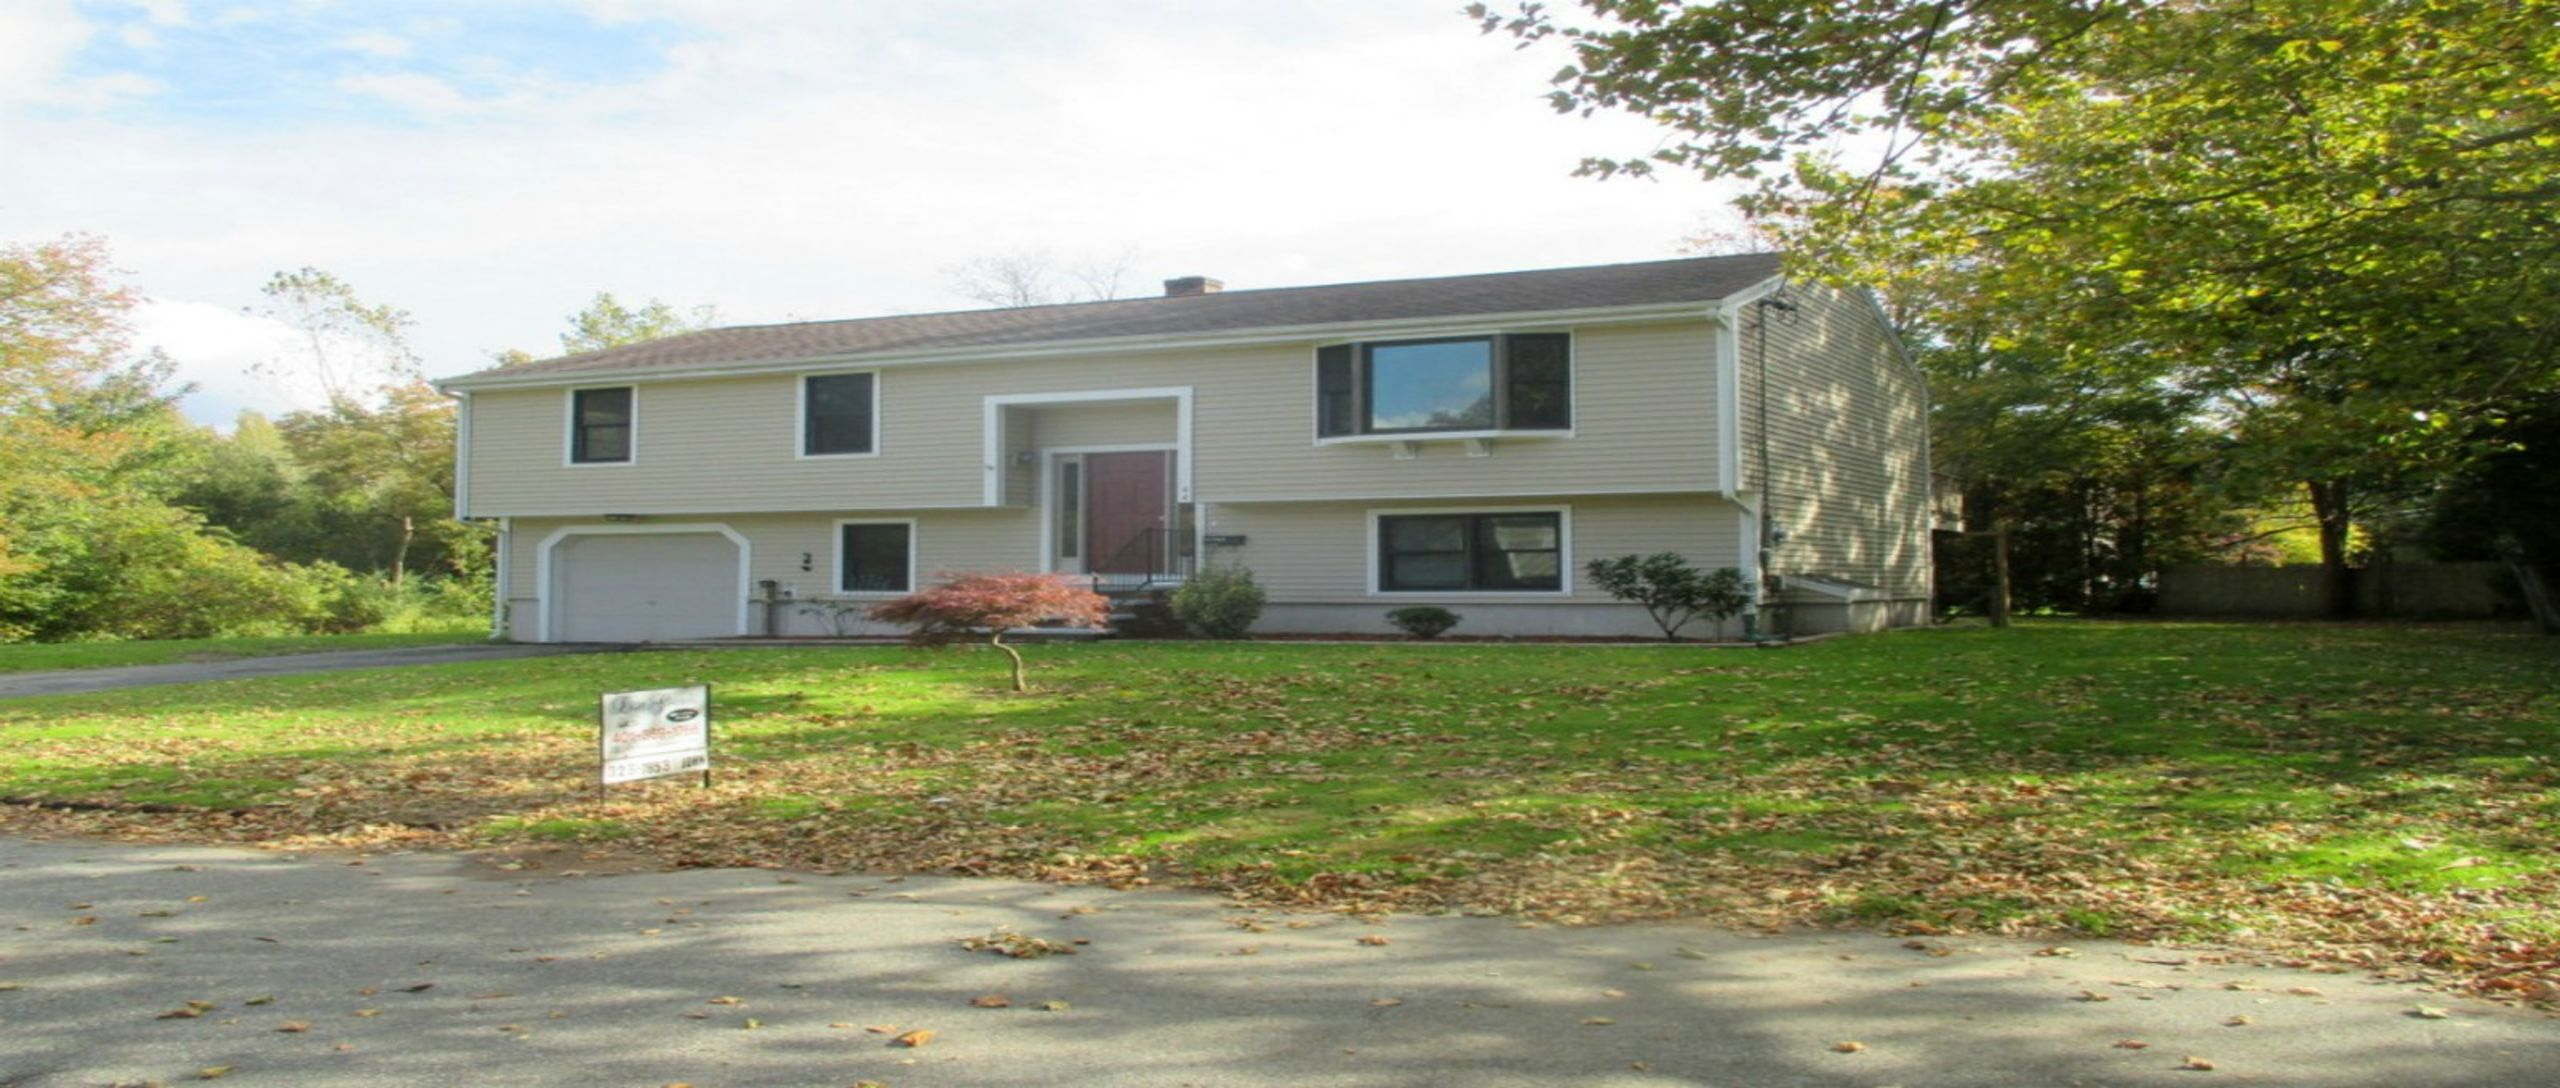 SOLD -Move In Ready!  For Sale 44 Elmwood Dr. Bristol, RI